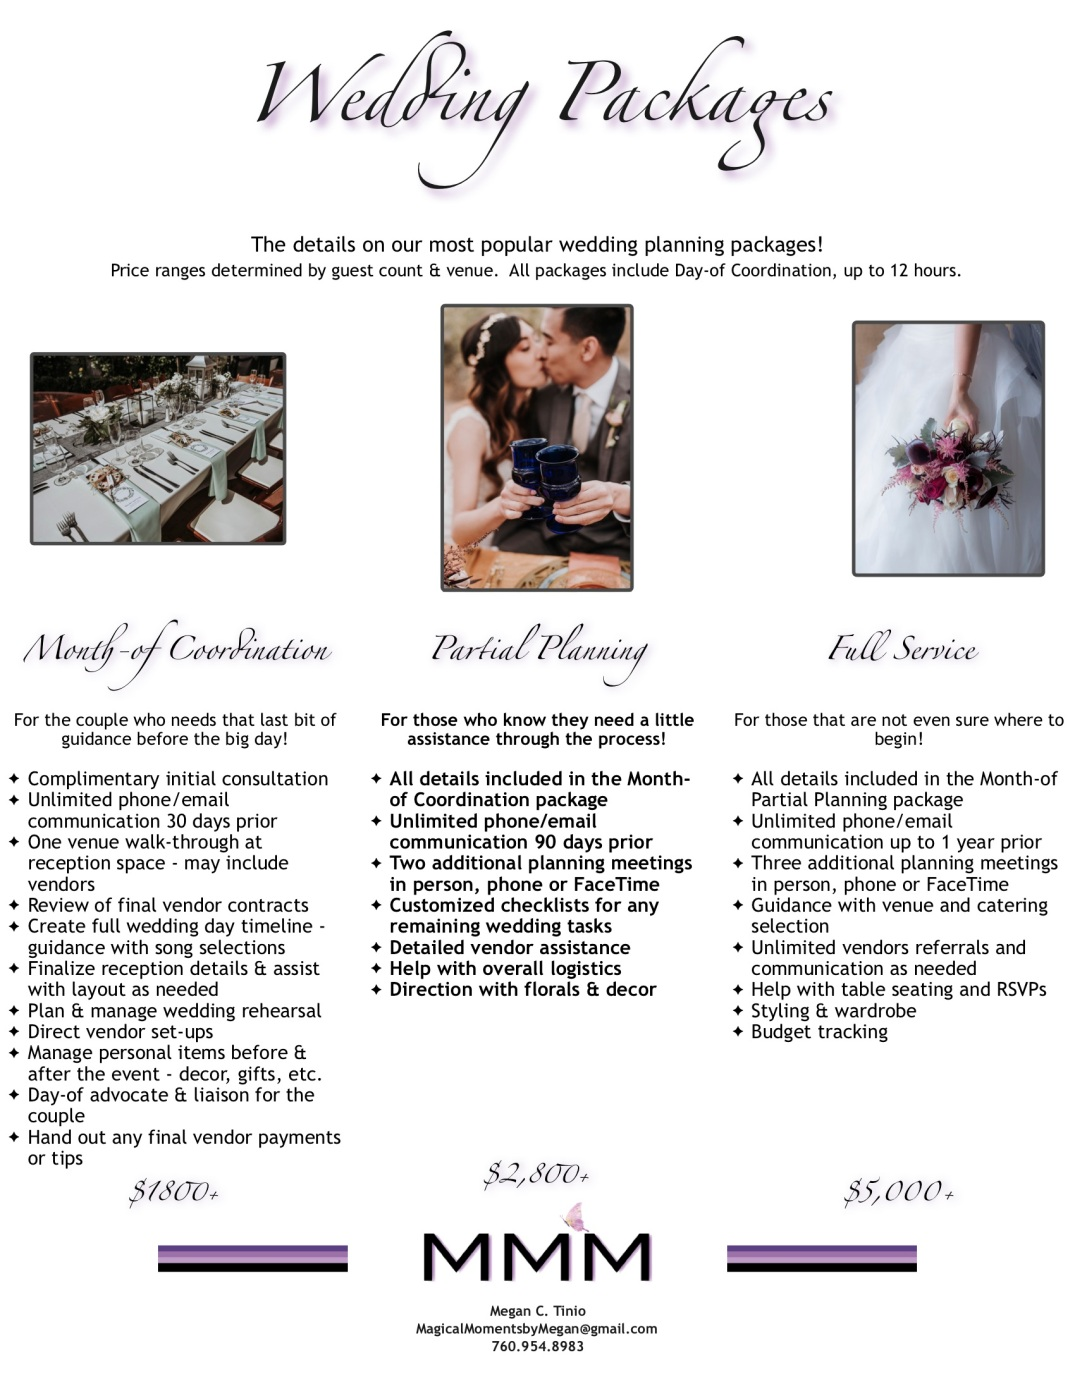 Magical Moments by Megan - Company Information Packet_4